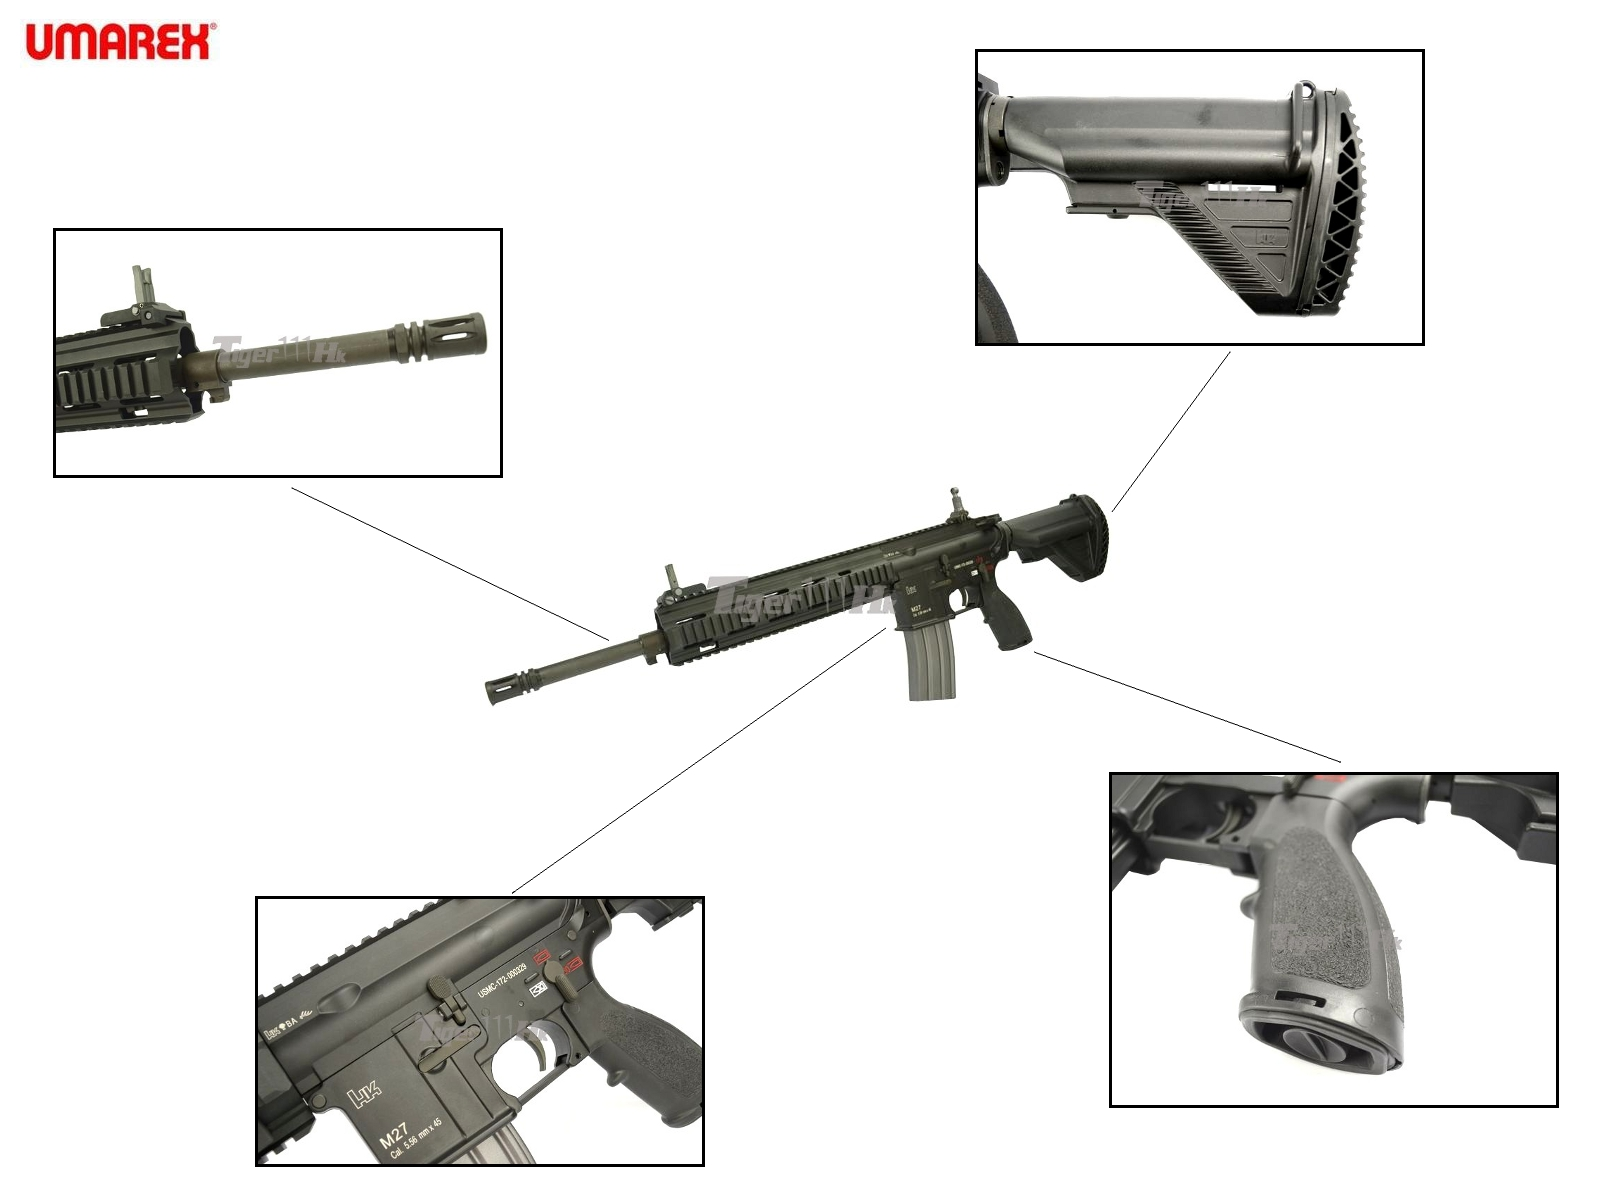 16029 ADVANCED MEDICAL SYSTEMS CLL1361062 TUBE FEEDING NUTRISAFE 6FR further HTBW6639SC LLDPE Can Liners By Heritage Bag furthermore M27 Assault Rifle additionally Lion King Outline moreover Timber Products Inspection Conyers Georgia. on scar for sale